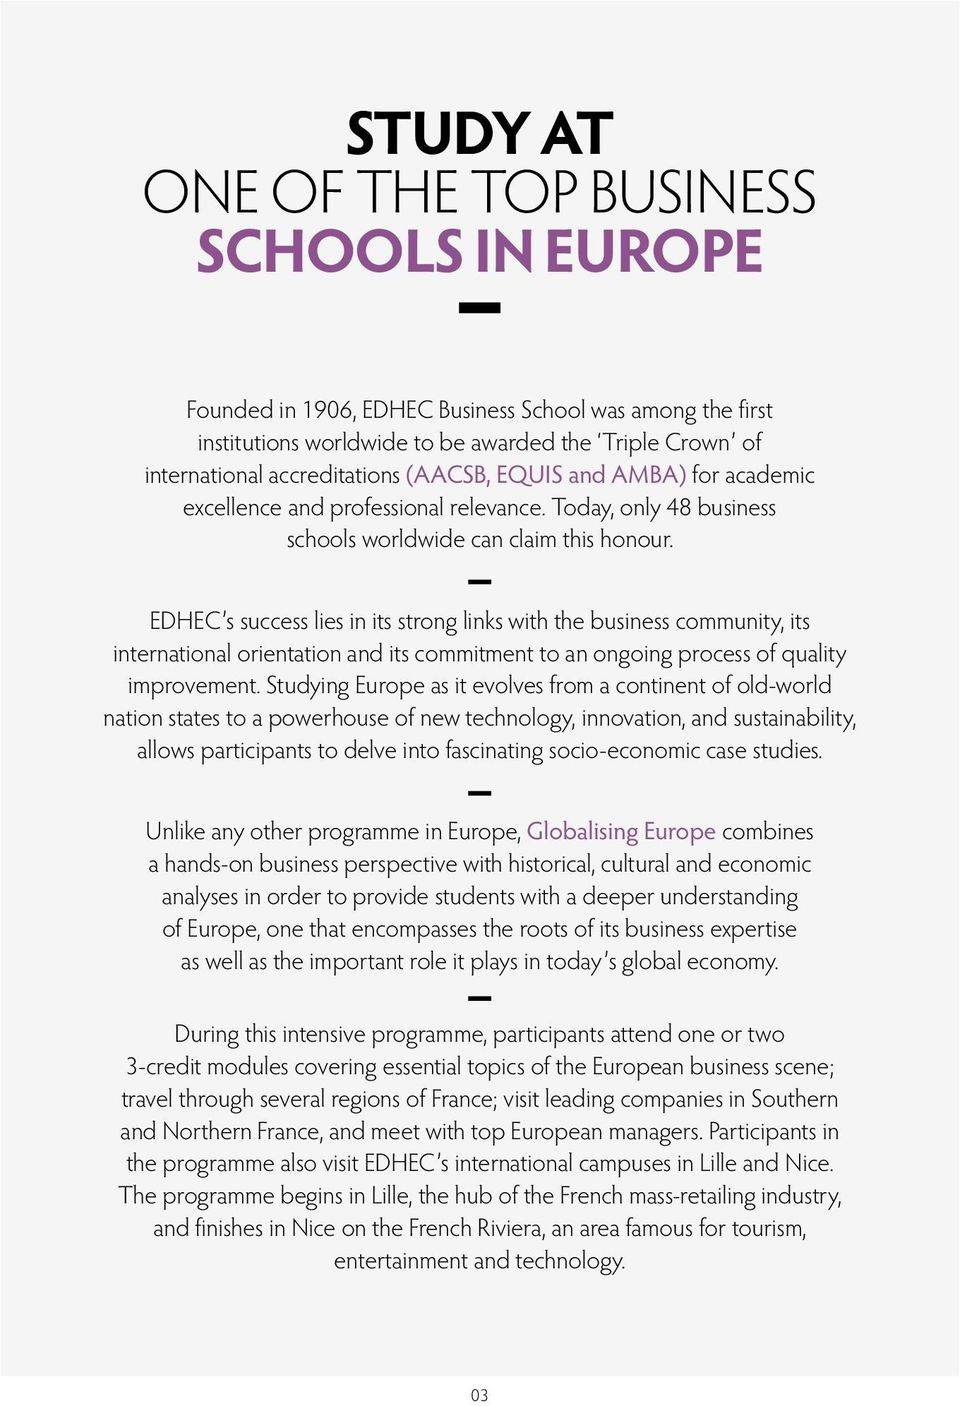 EDHEC s success lies in its strong links with the business community, its international orientation and its commitment to an ongoing process of quality improvement.